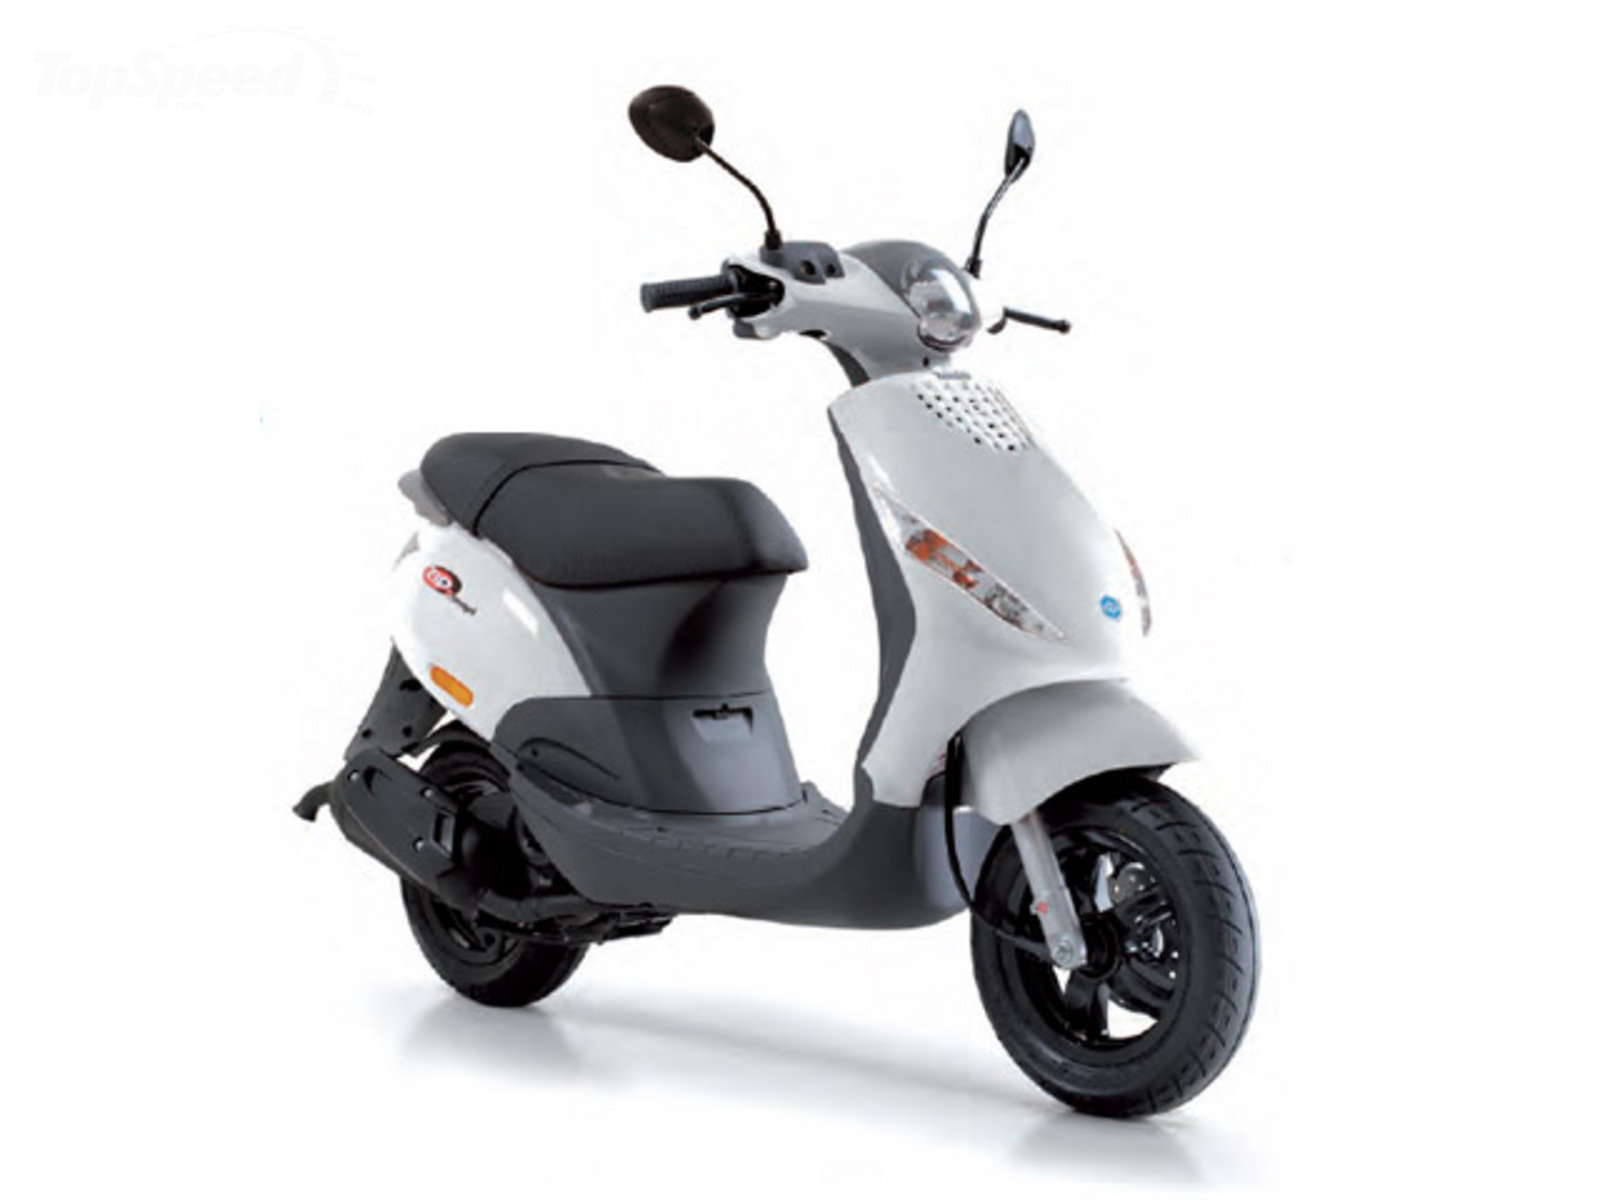 2014 piaggio zip 50 2t review gallery top speed. Black Bedroom Furniture Sets. Home Design Ideas